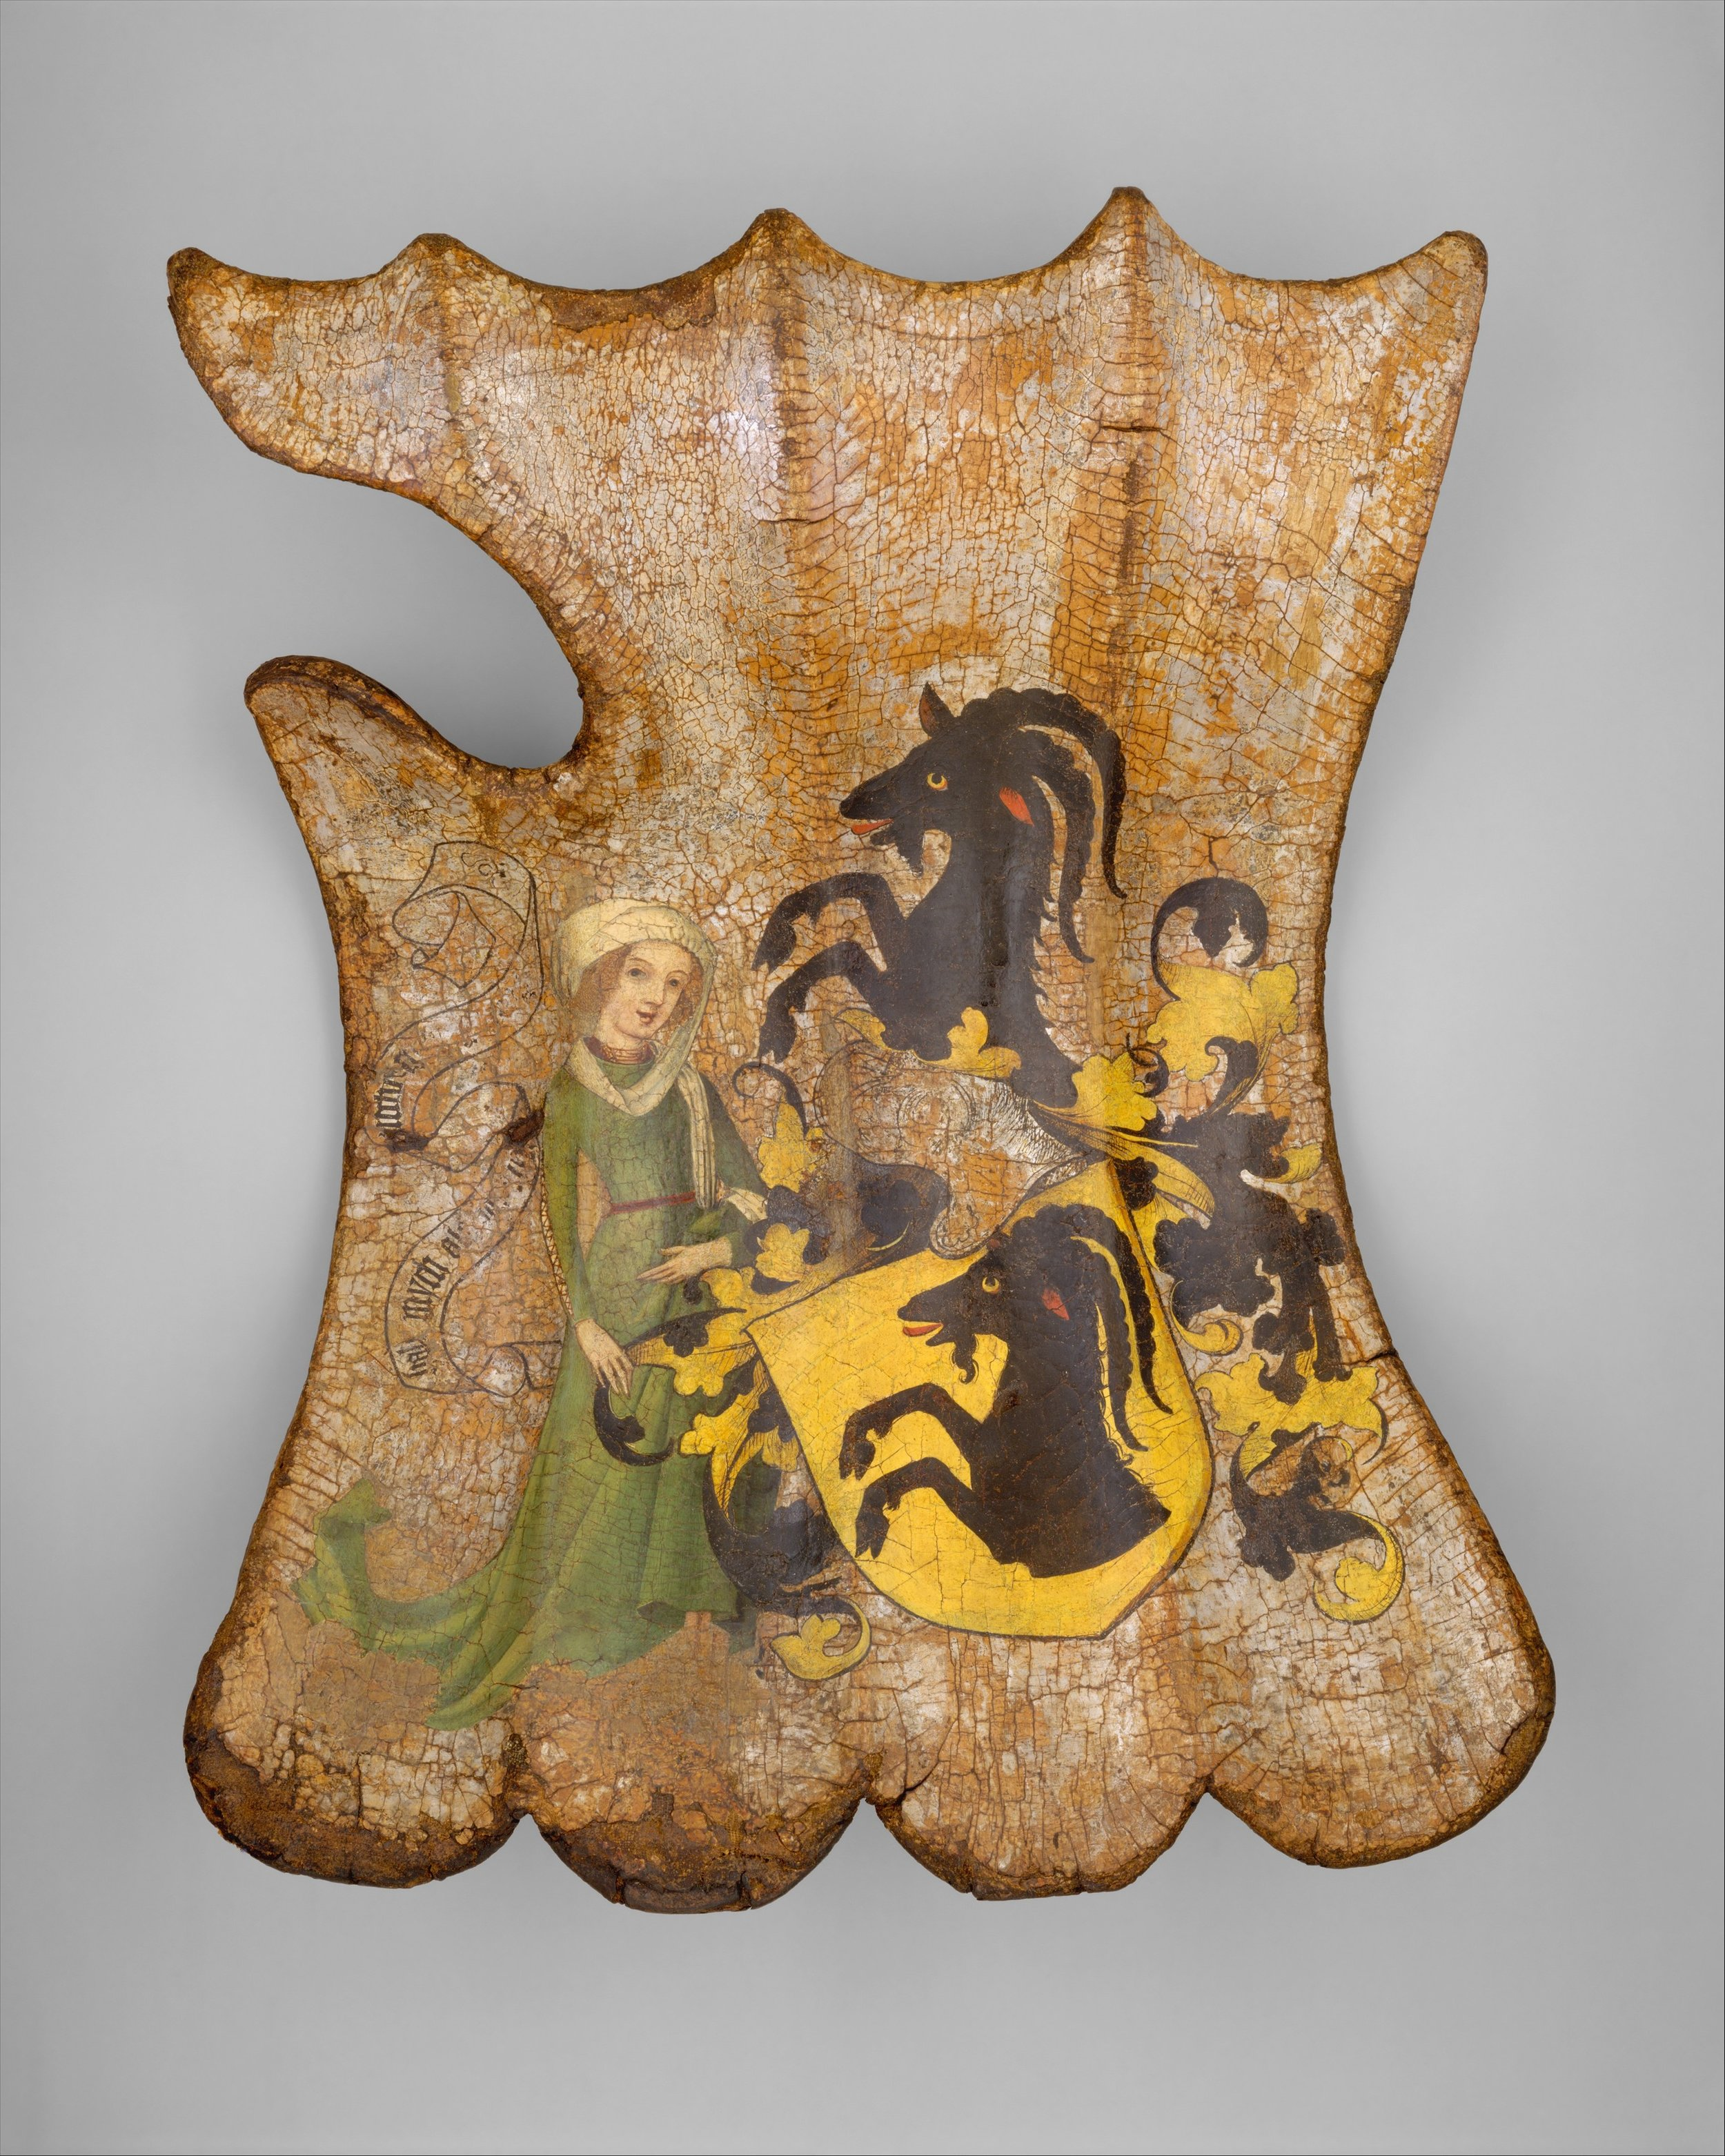 Shield for the Field or Tournament (Targe) ca. 1450 ,  German, Wood, leather, linen, gesso, pigments, silver, H. 22 in. (55.88 cm); W. 16 in. (40.64 cm), Gift of Mrs. Florence Blumenthal, 1925, Accession Number : 25.26.1  Click    here    to view on the Museum's website